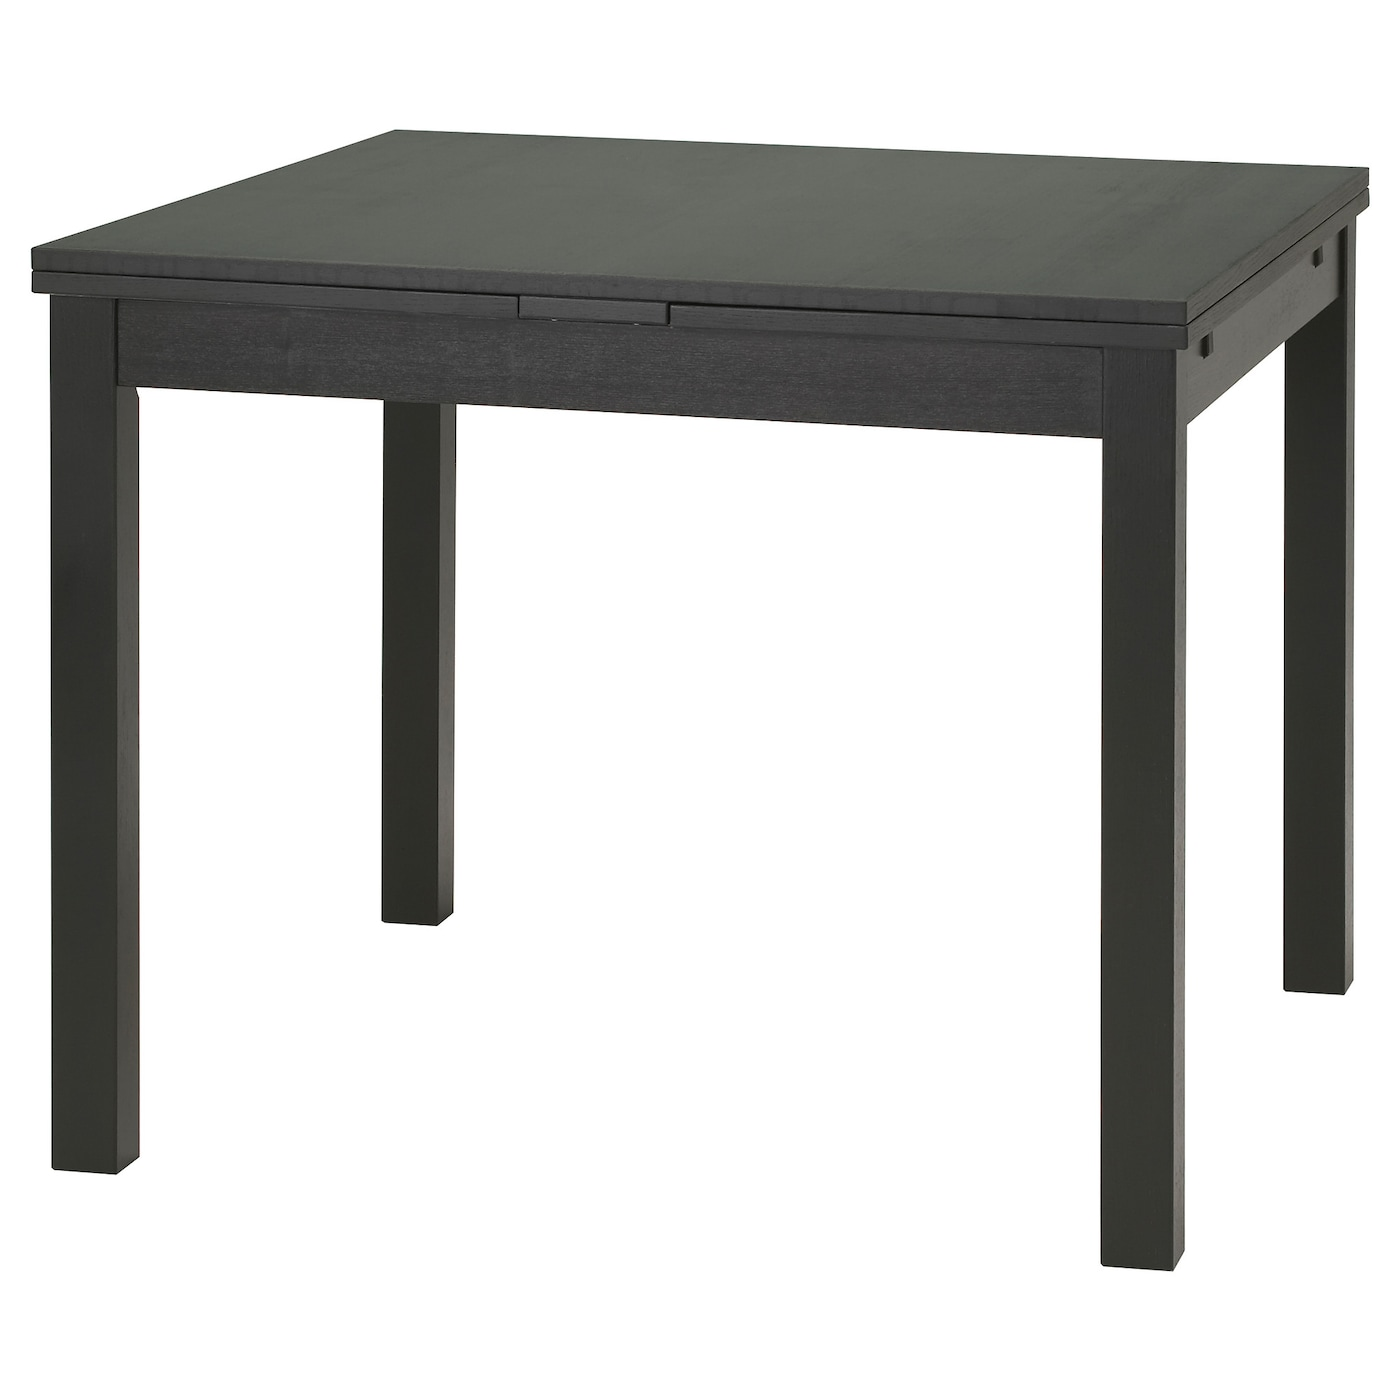 Bjursta extendable table brown black 90 129 168x90 cm ikea for Table salle a manger escamotable